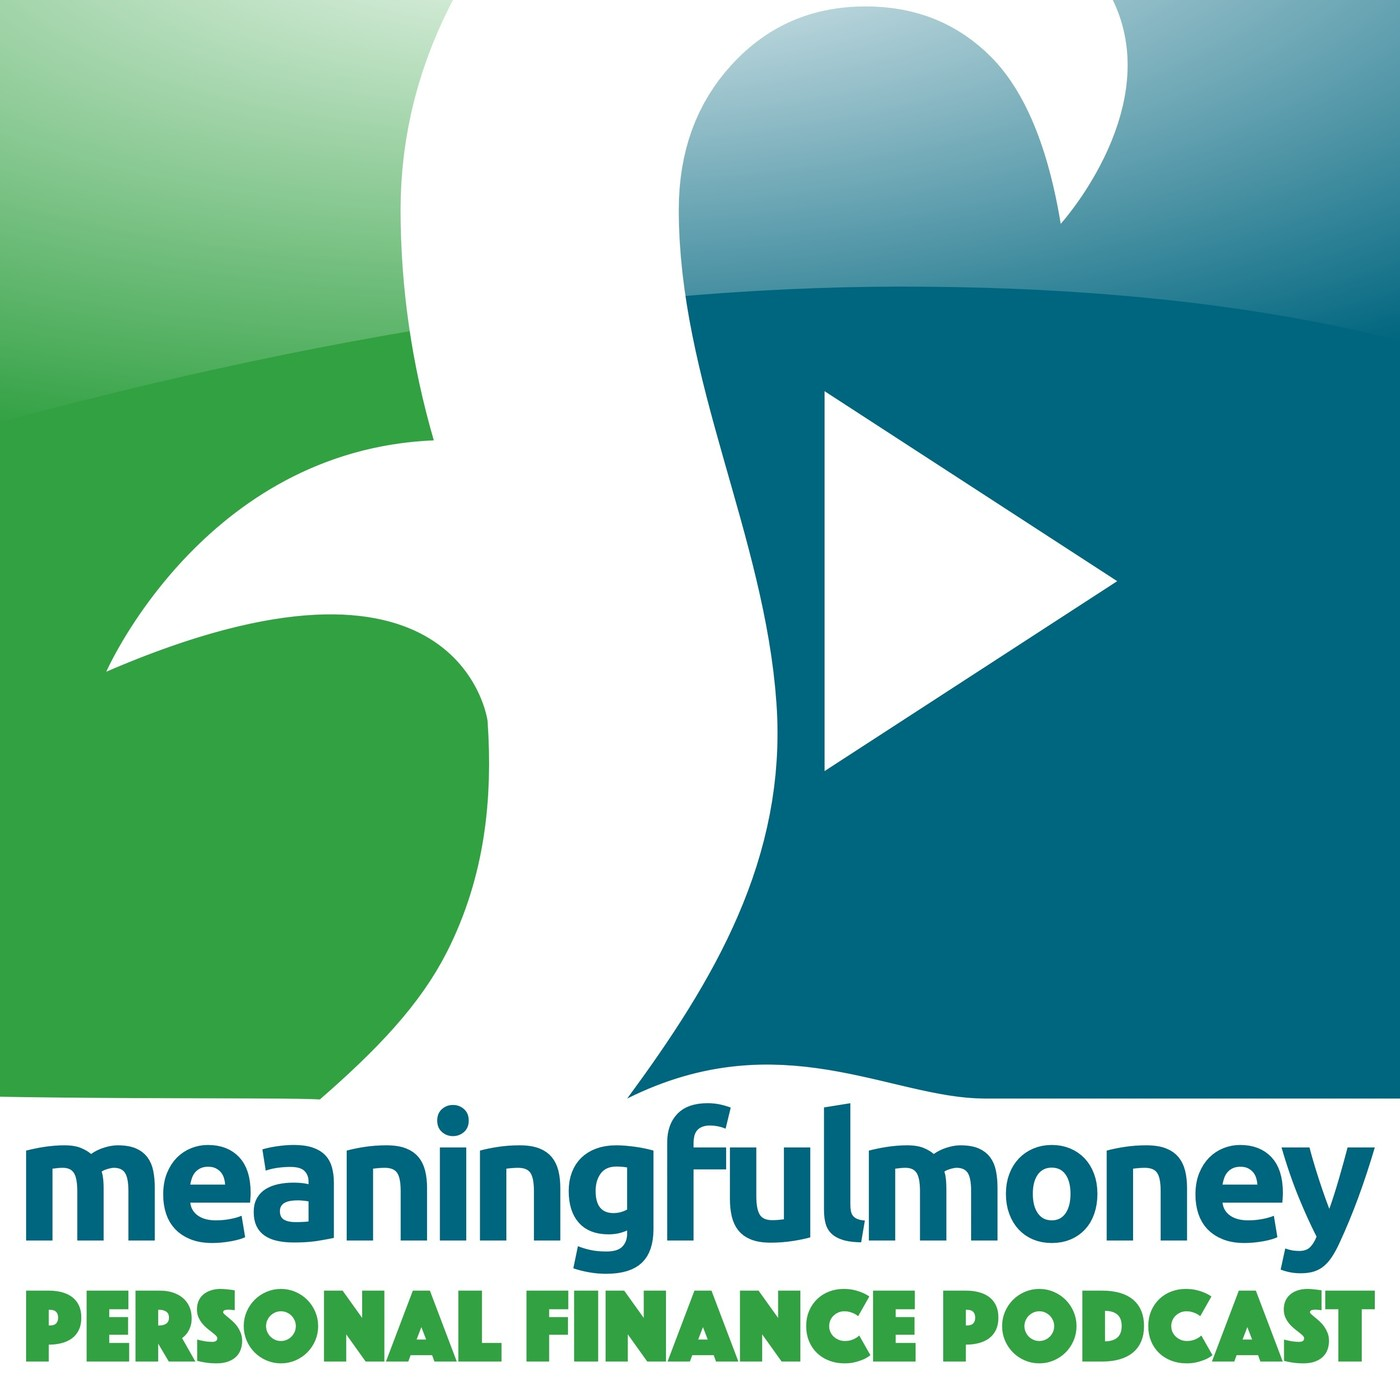 The Meaningful Money Podcast – Making Sense Of Mon